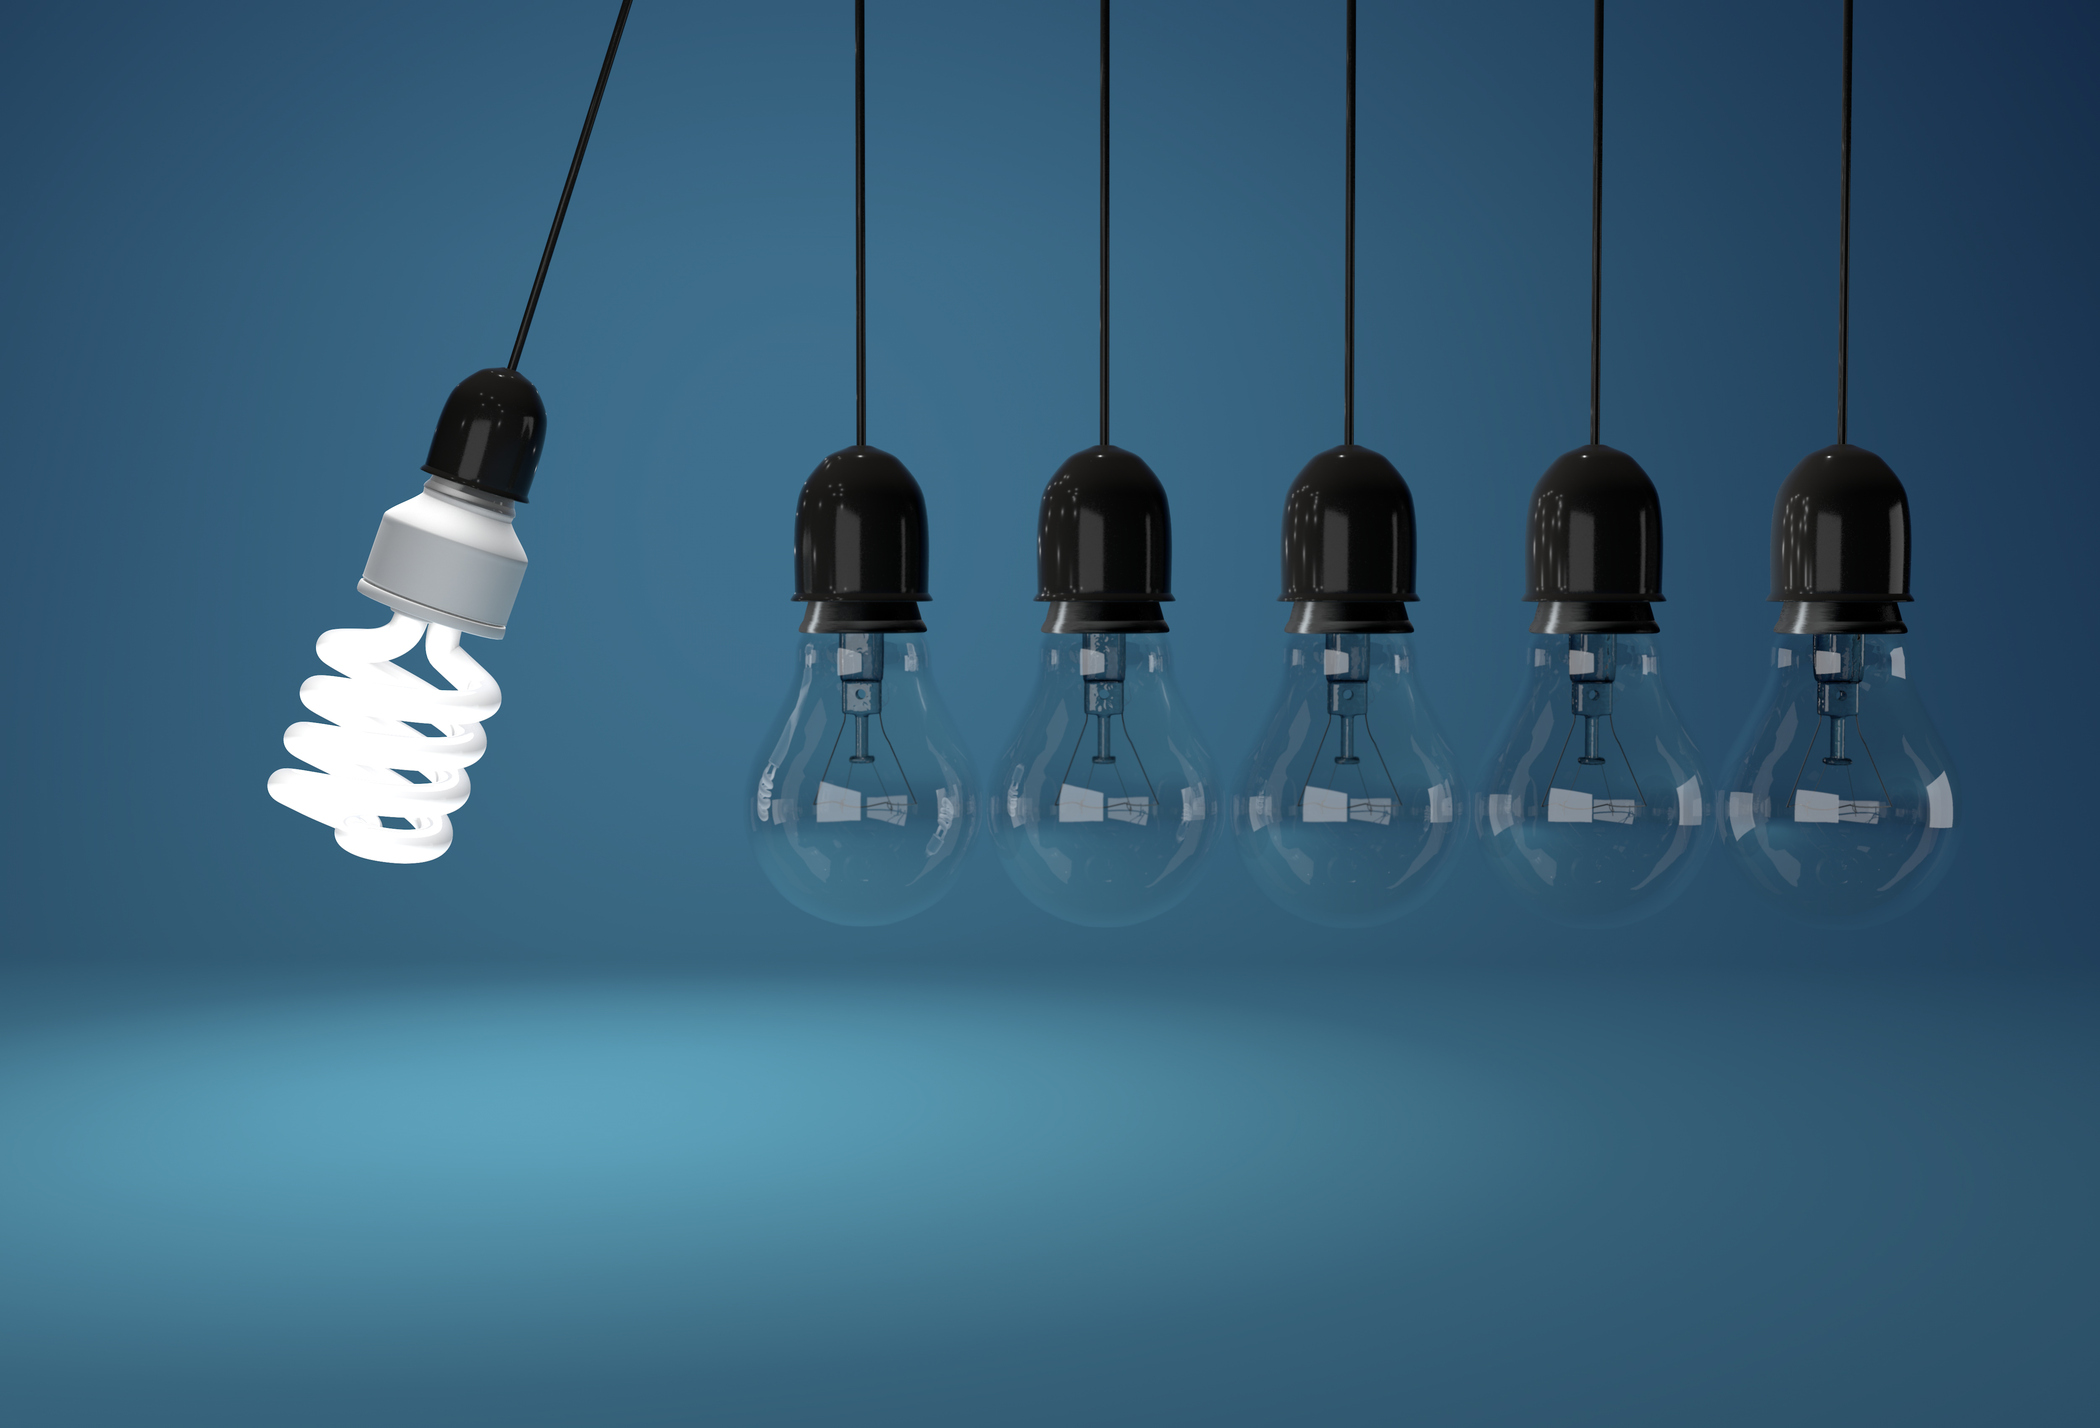 Energy saving bulb and incandescent bulb in perpetual motion over blue background